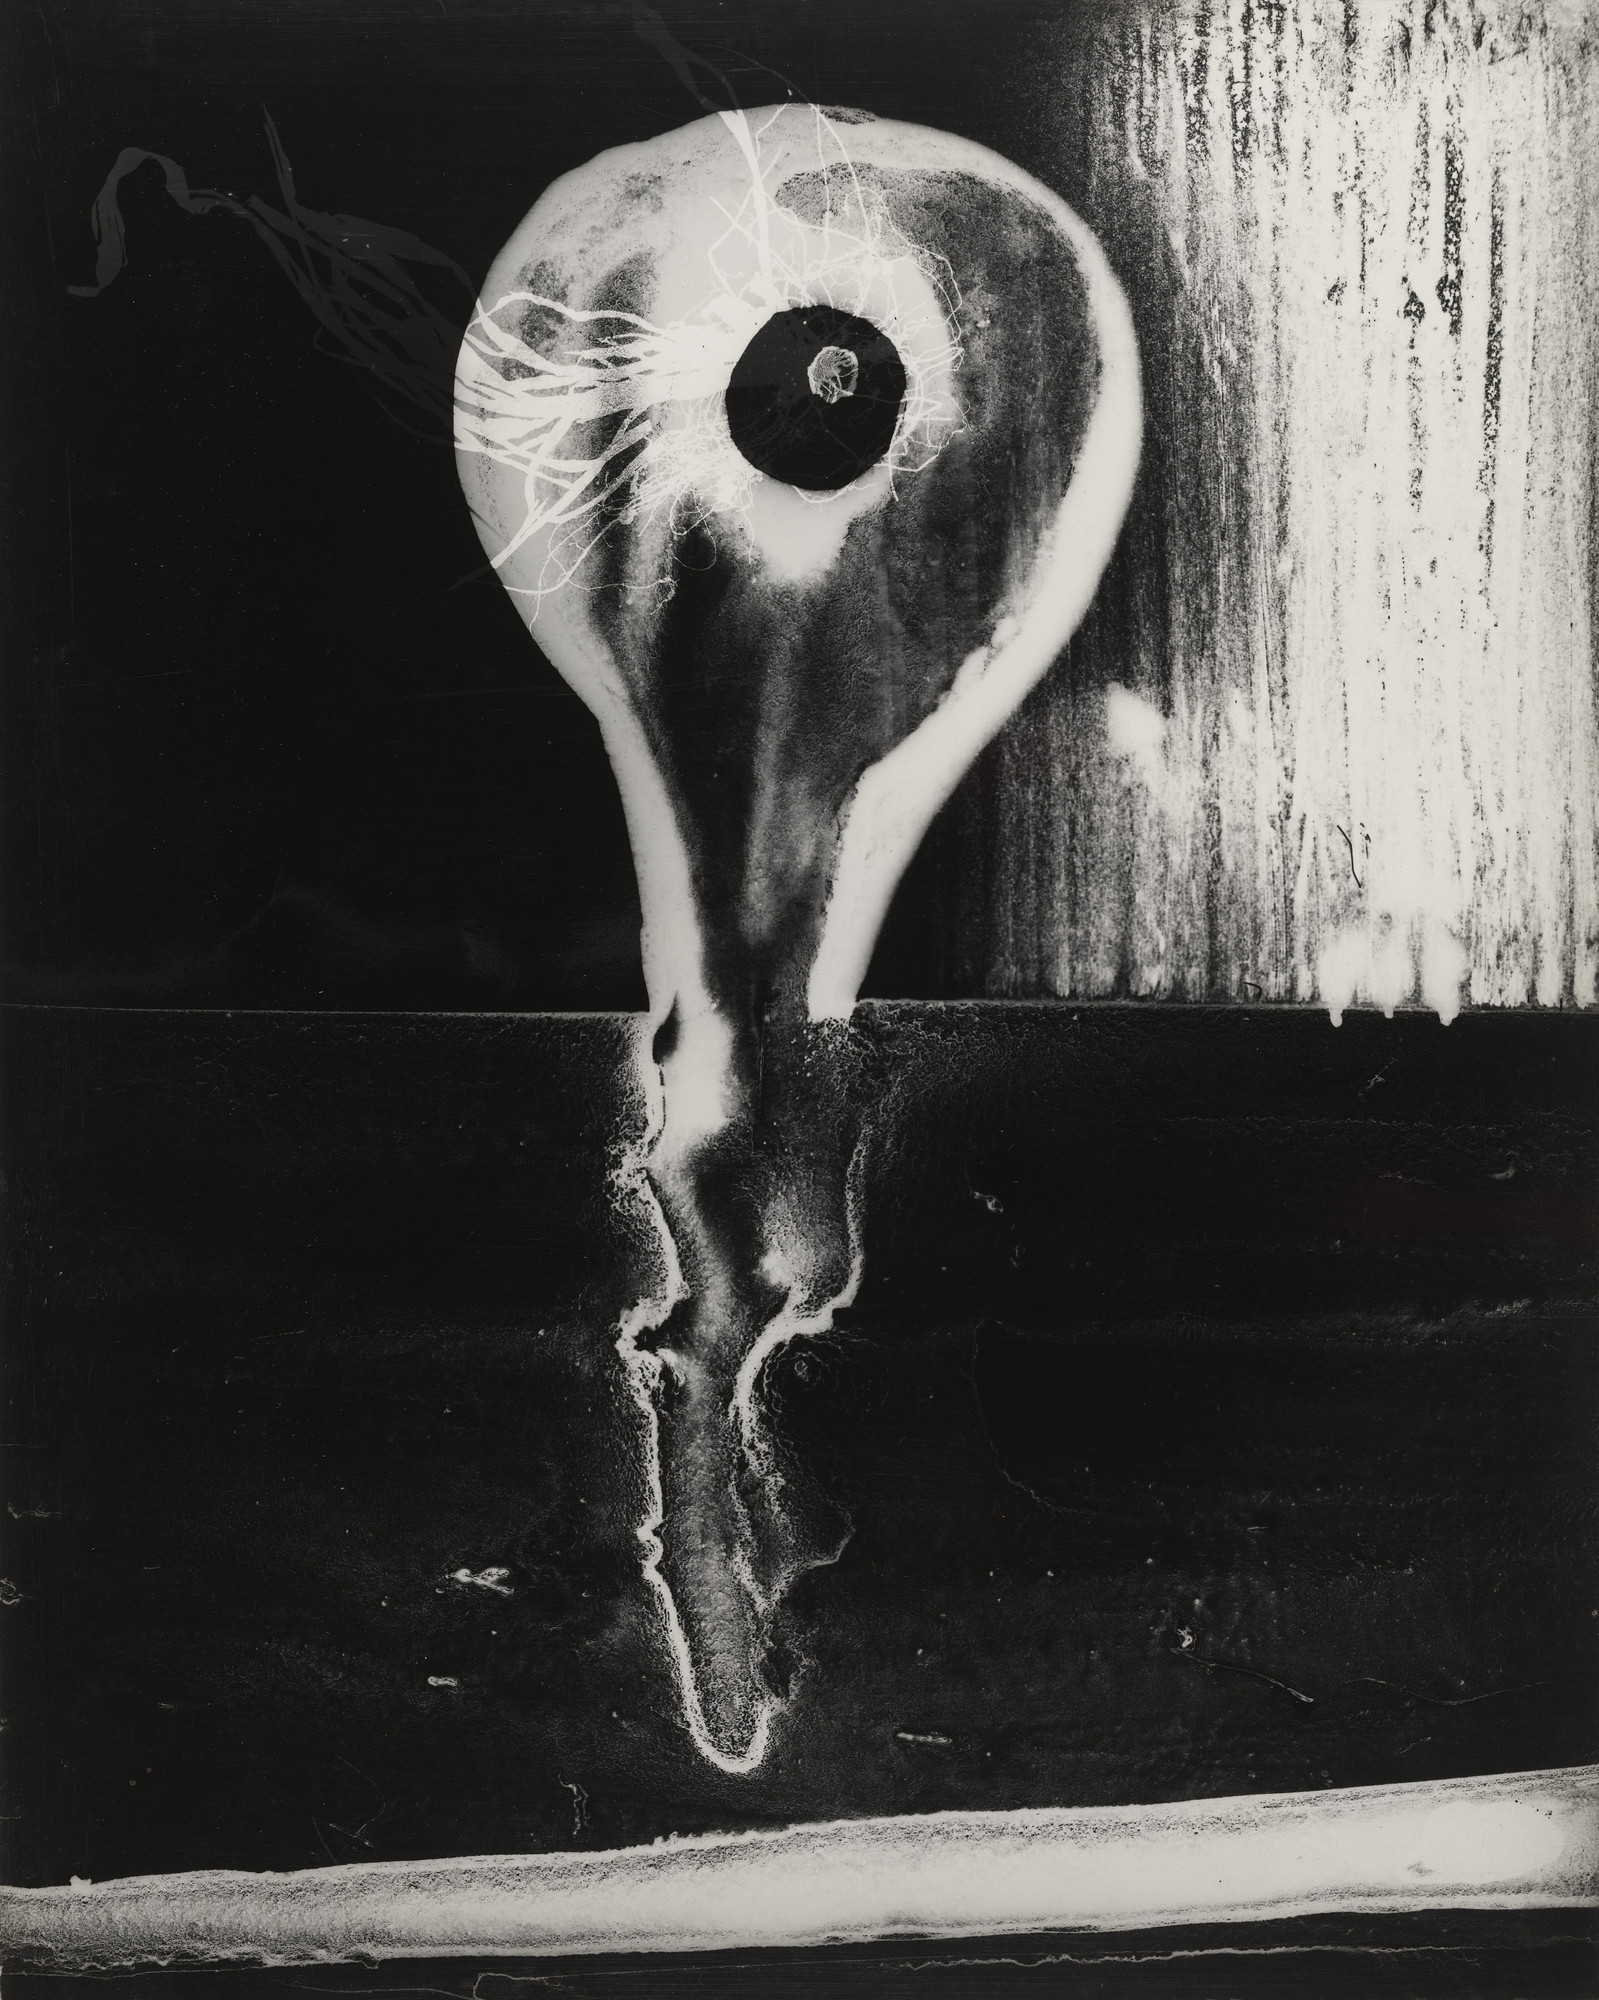 György Kepes. Abstraction. 1938